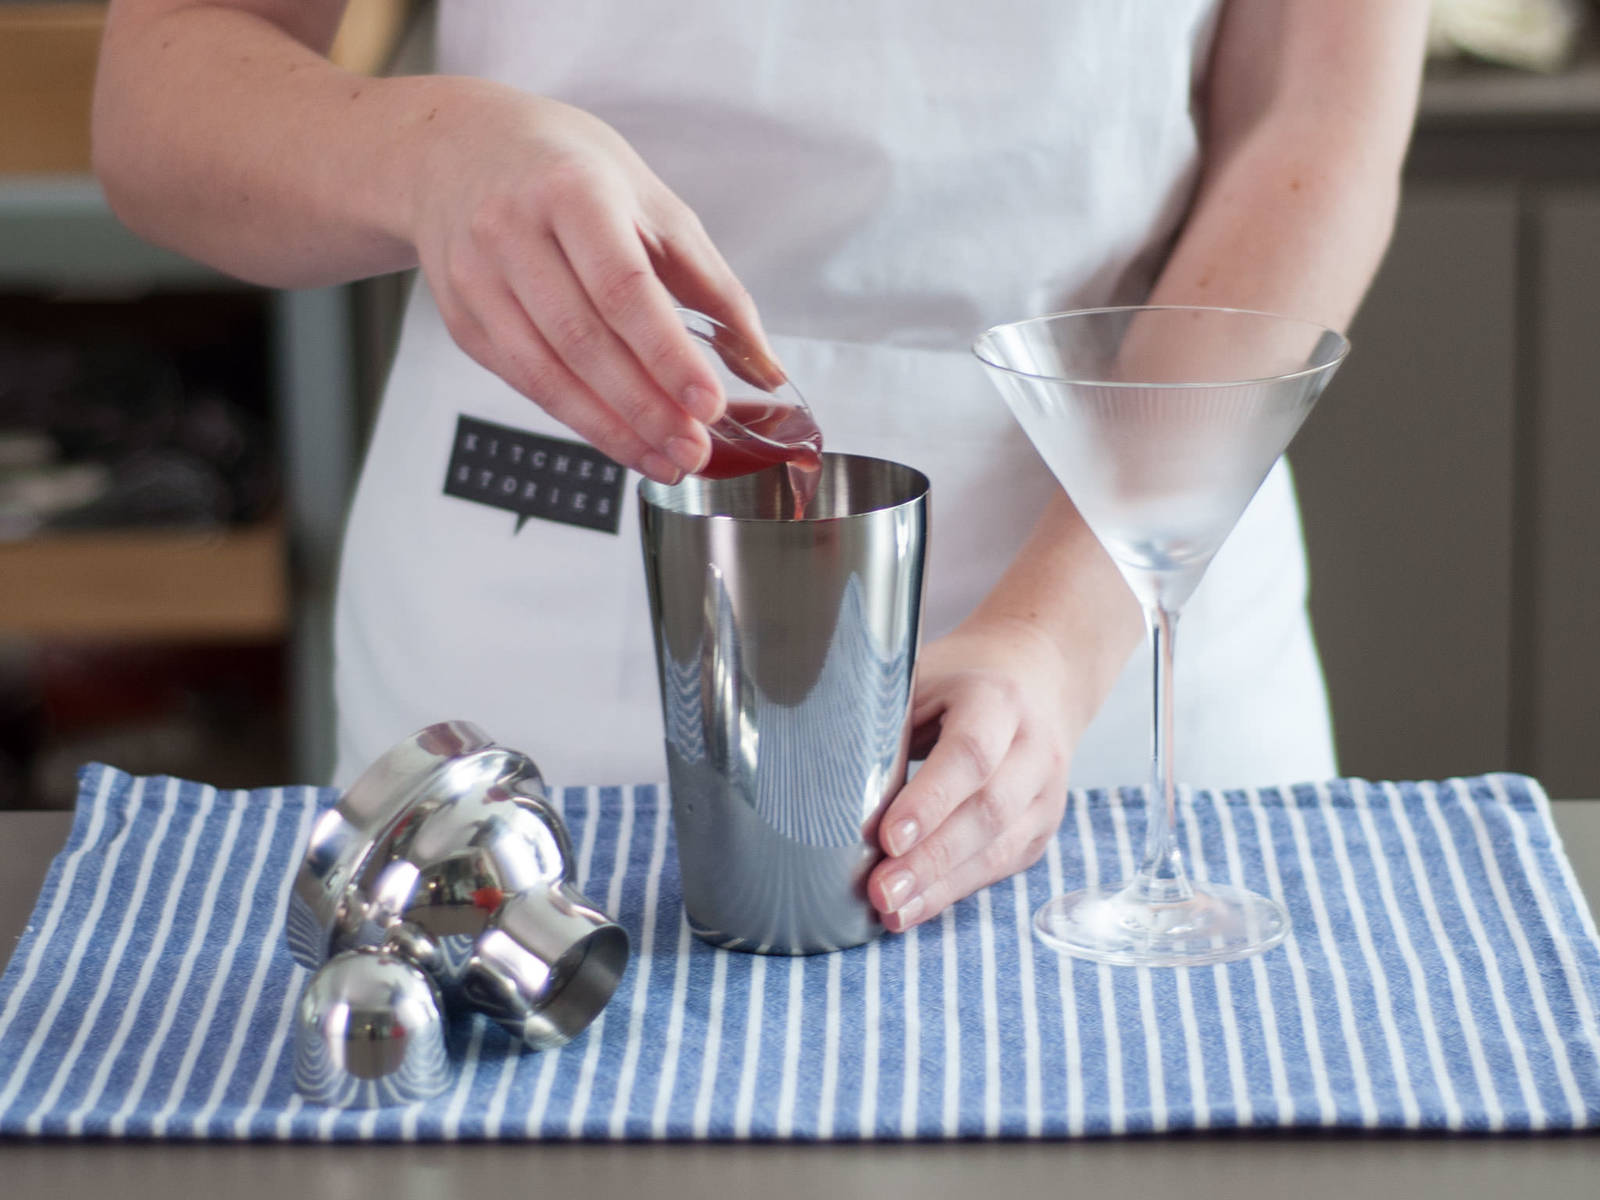 Briefly place martini glass in freezer until lightly frosted. In a cocktail shaker, add Cointreau, cranberry juice, lime juice, vodka, and ice cubes. Shake vigorously for approx. 30 sec.